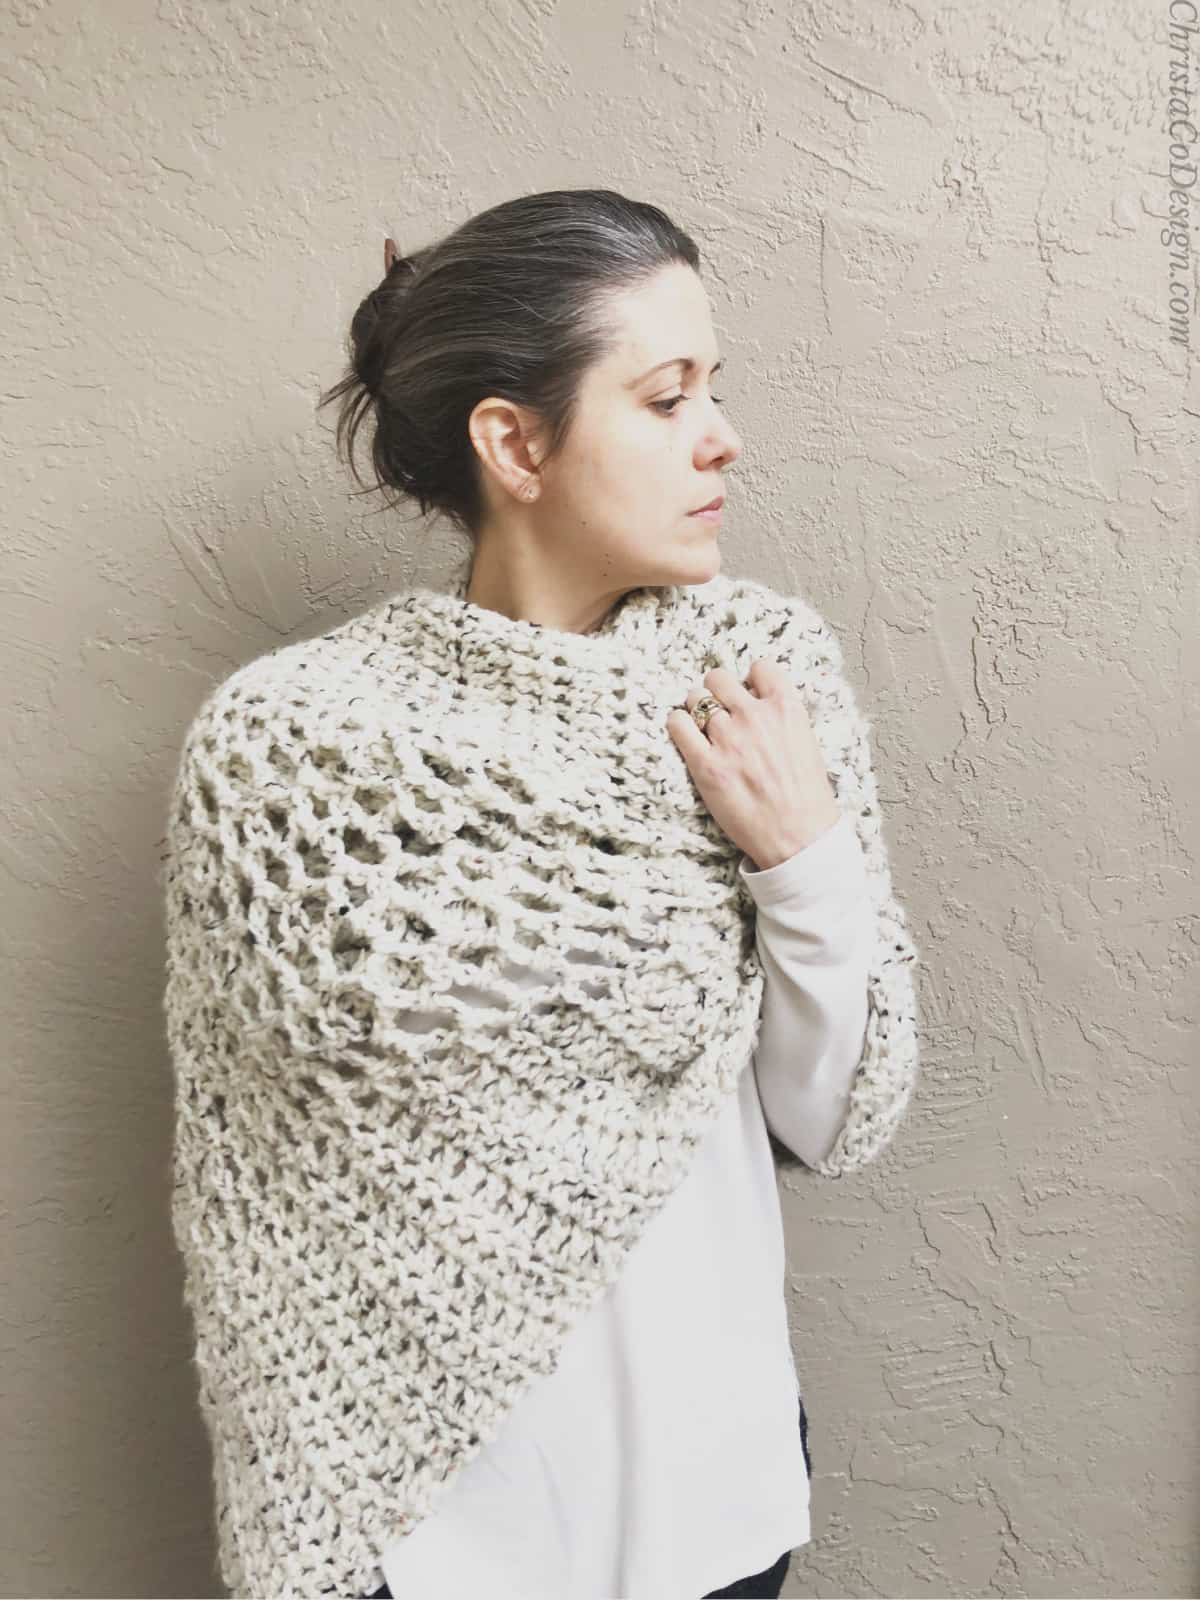 Front view of woman in cream colored easy rectangular crochet shawl pattern looking to the side.